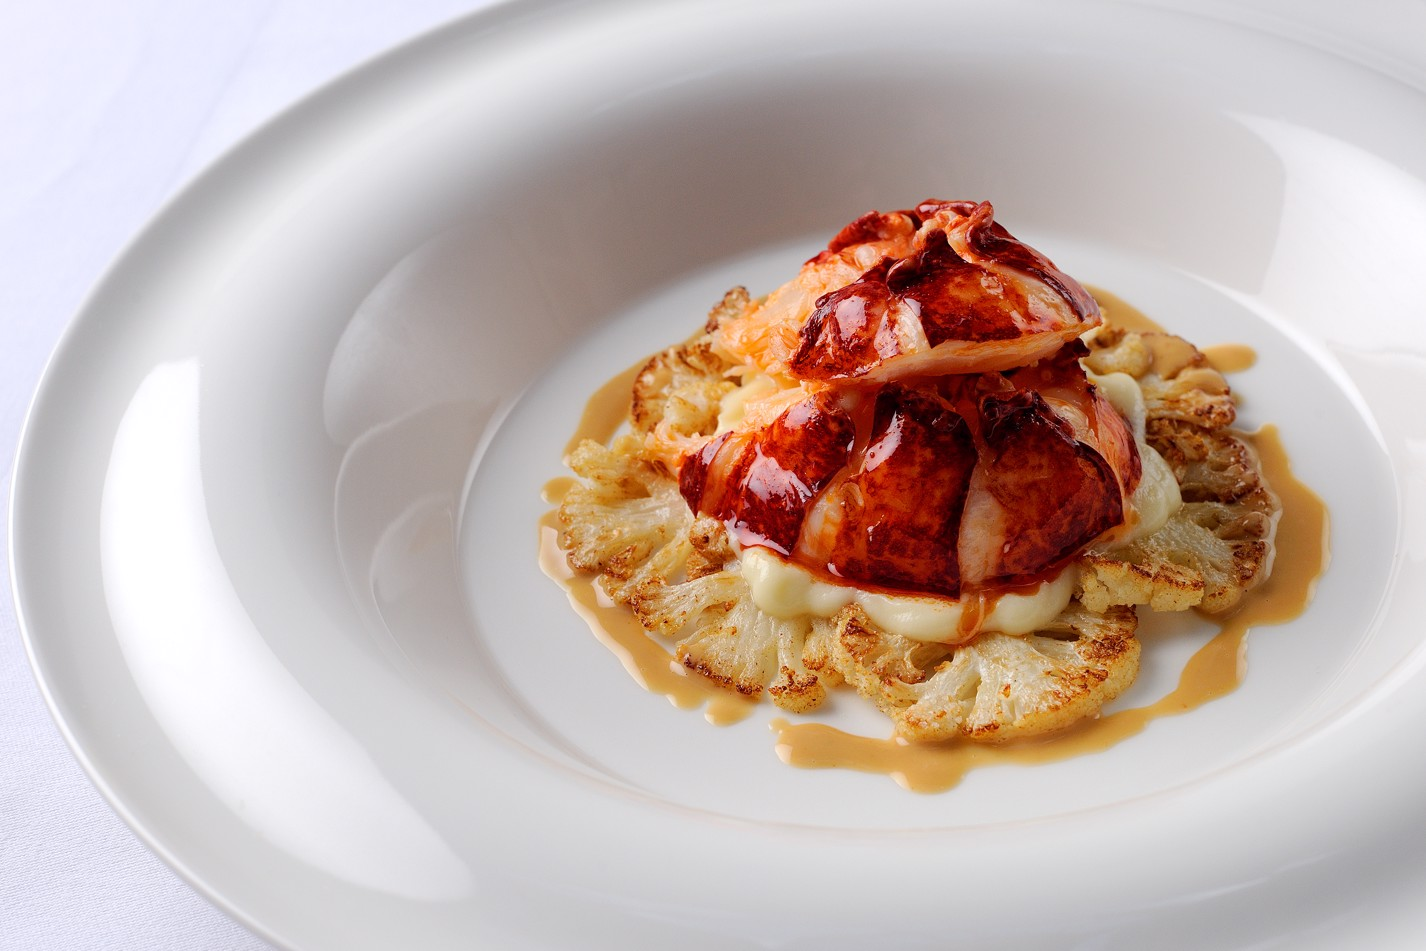 Poached lobster tail with cauliflower and butter sauce